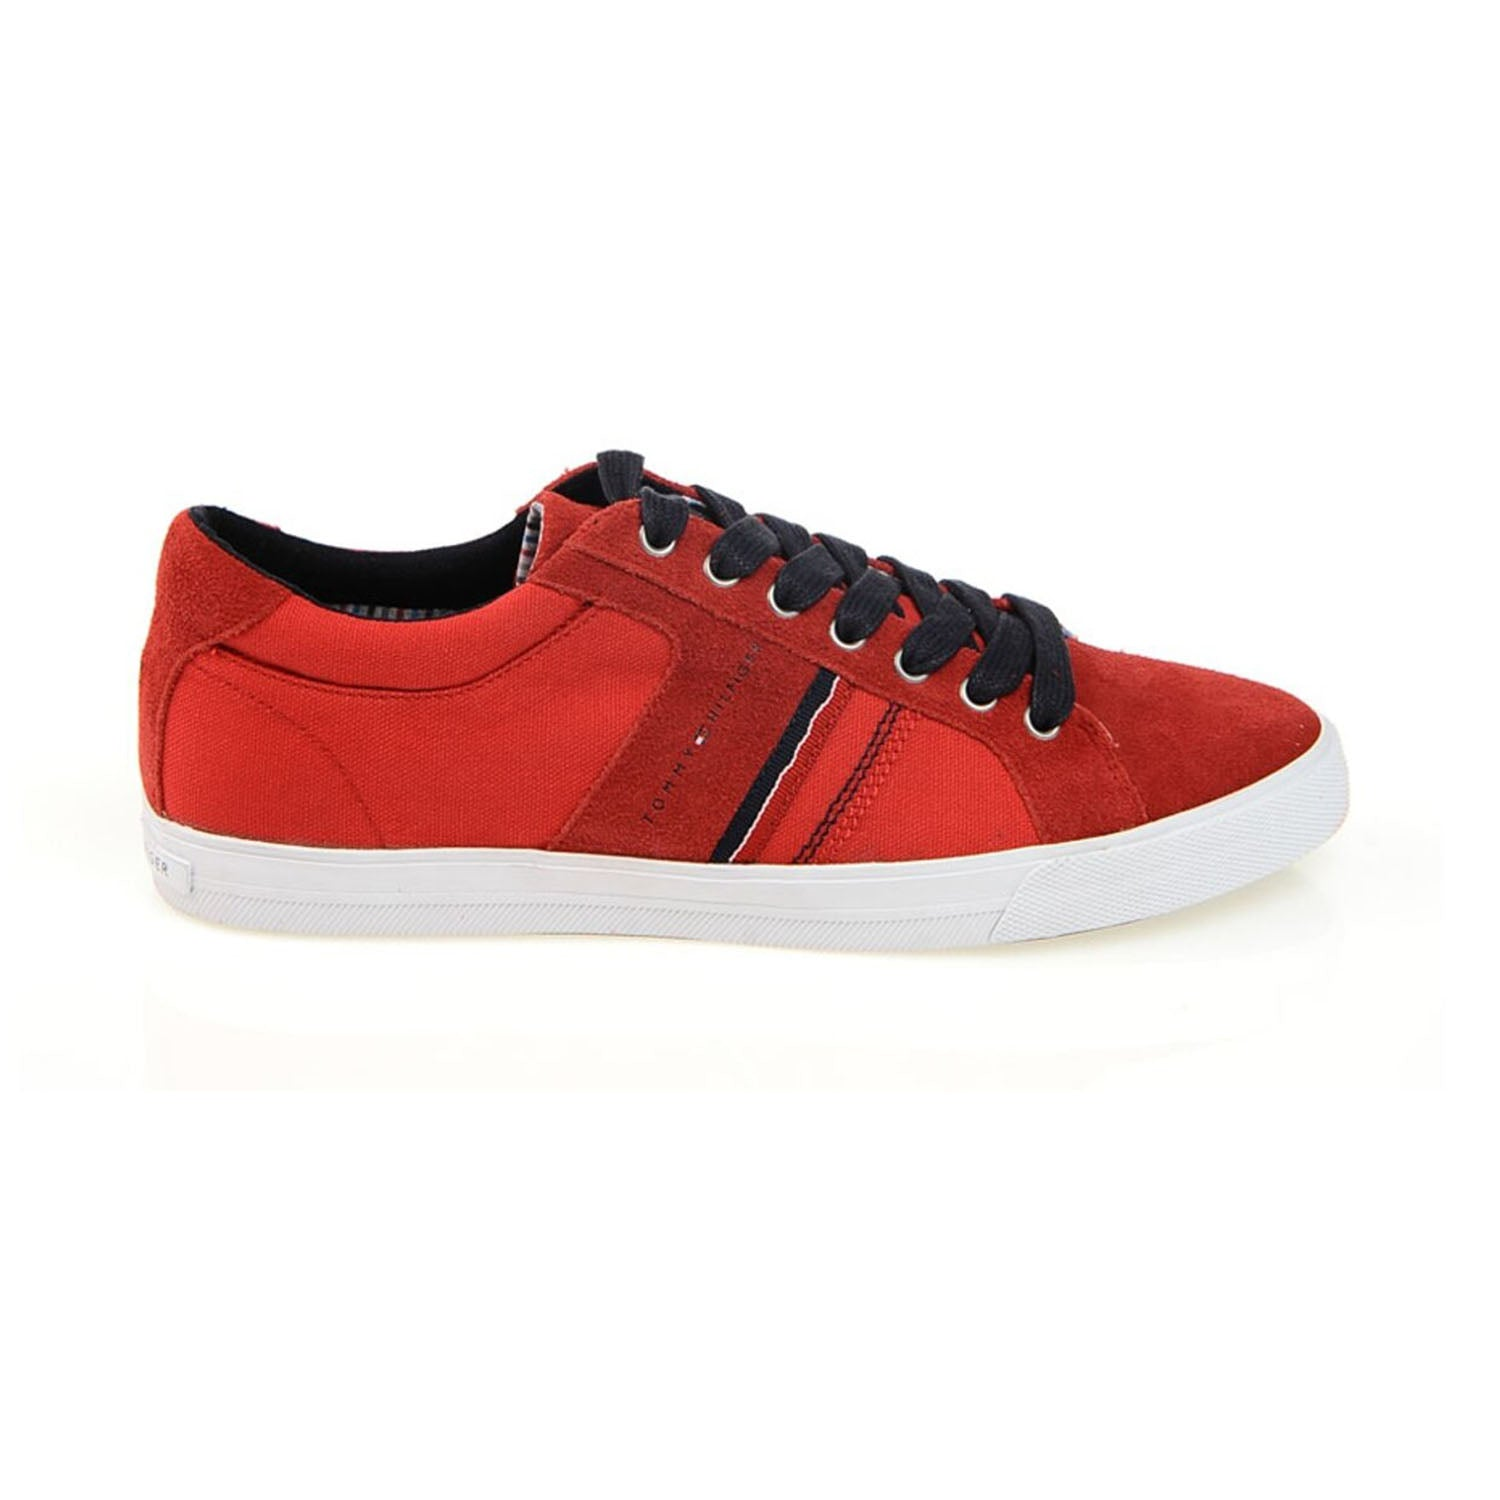 Tommy Hilfiger Winston 5C Lace up Trainer